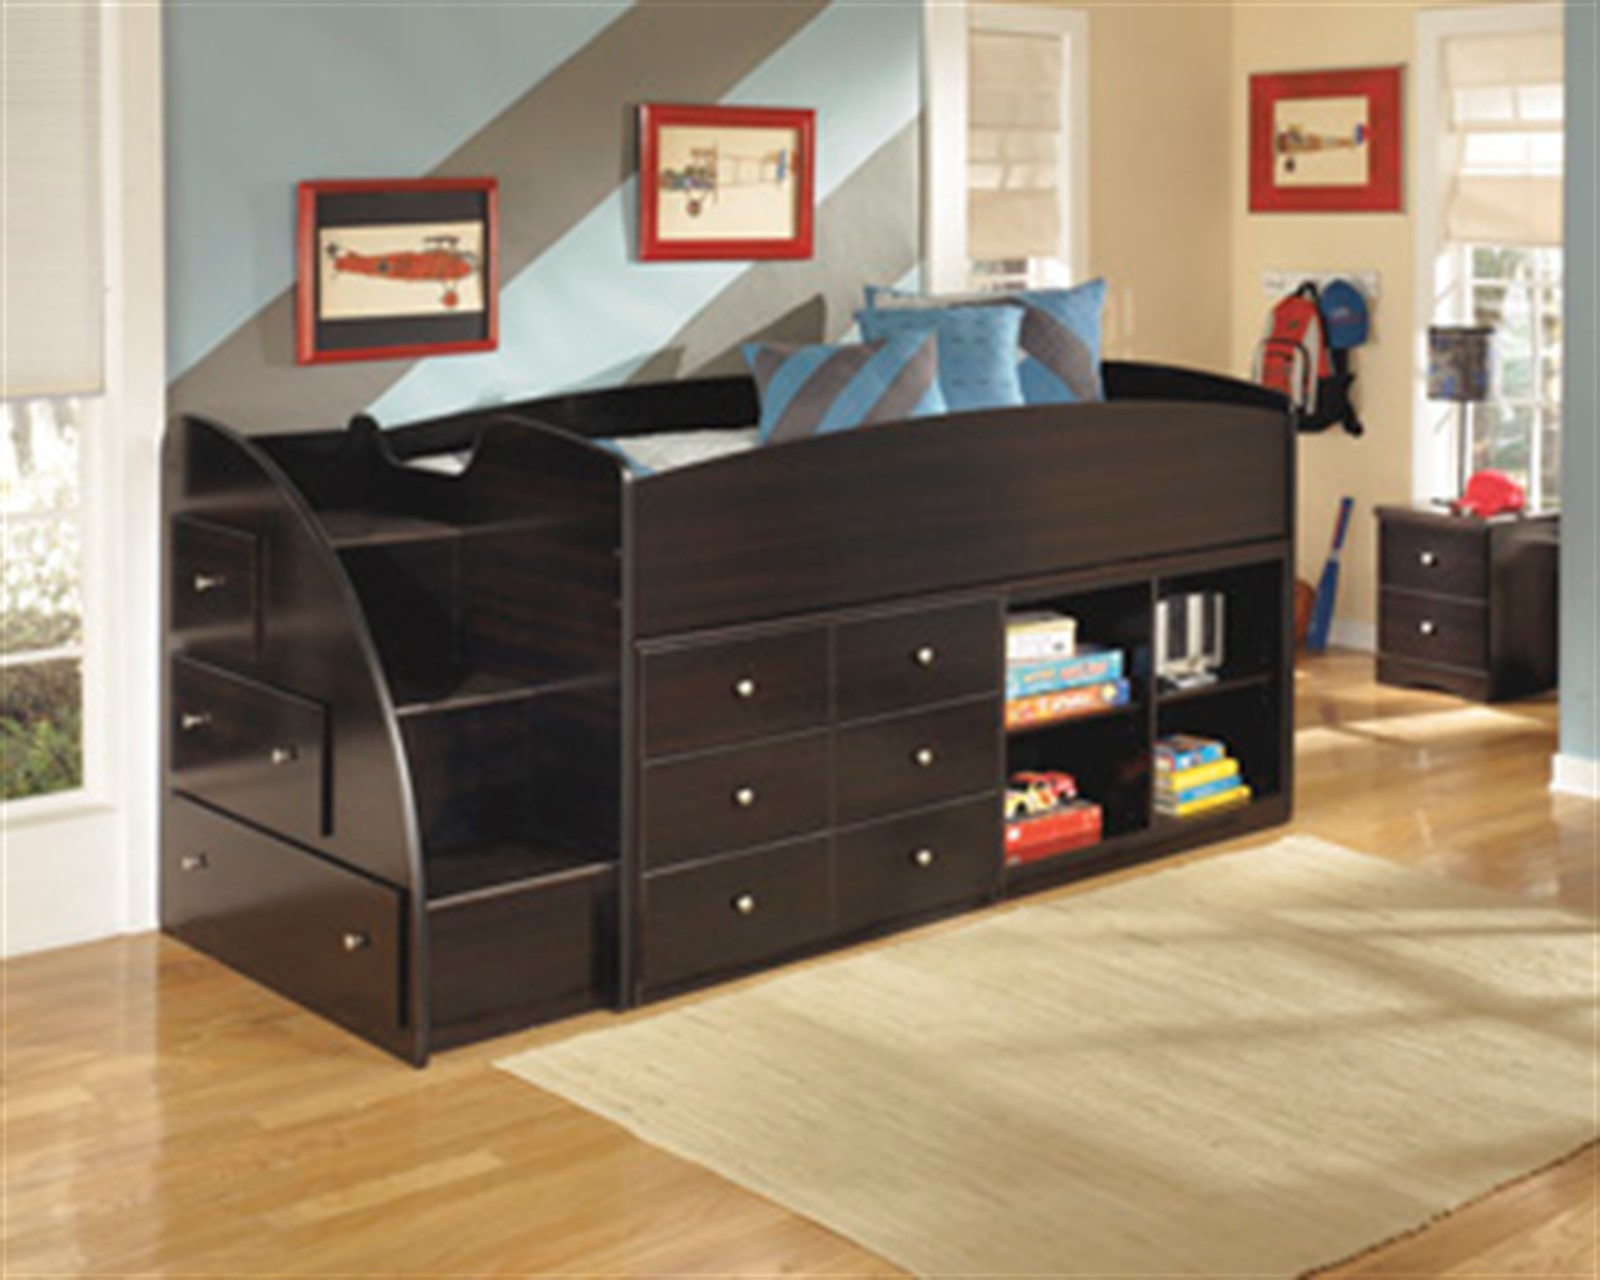 Embrace Loft Bed with Storage and Bookcase - Twin - Merlot